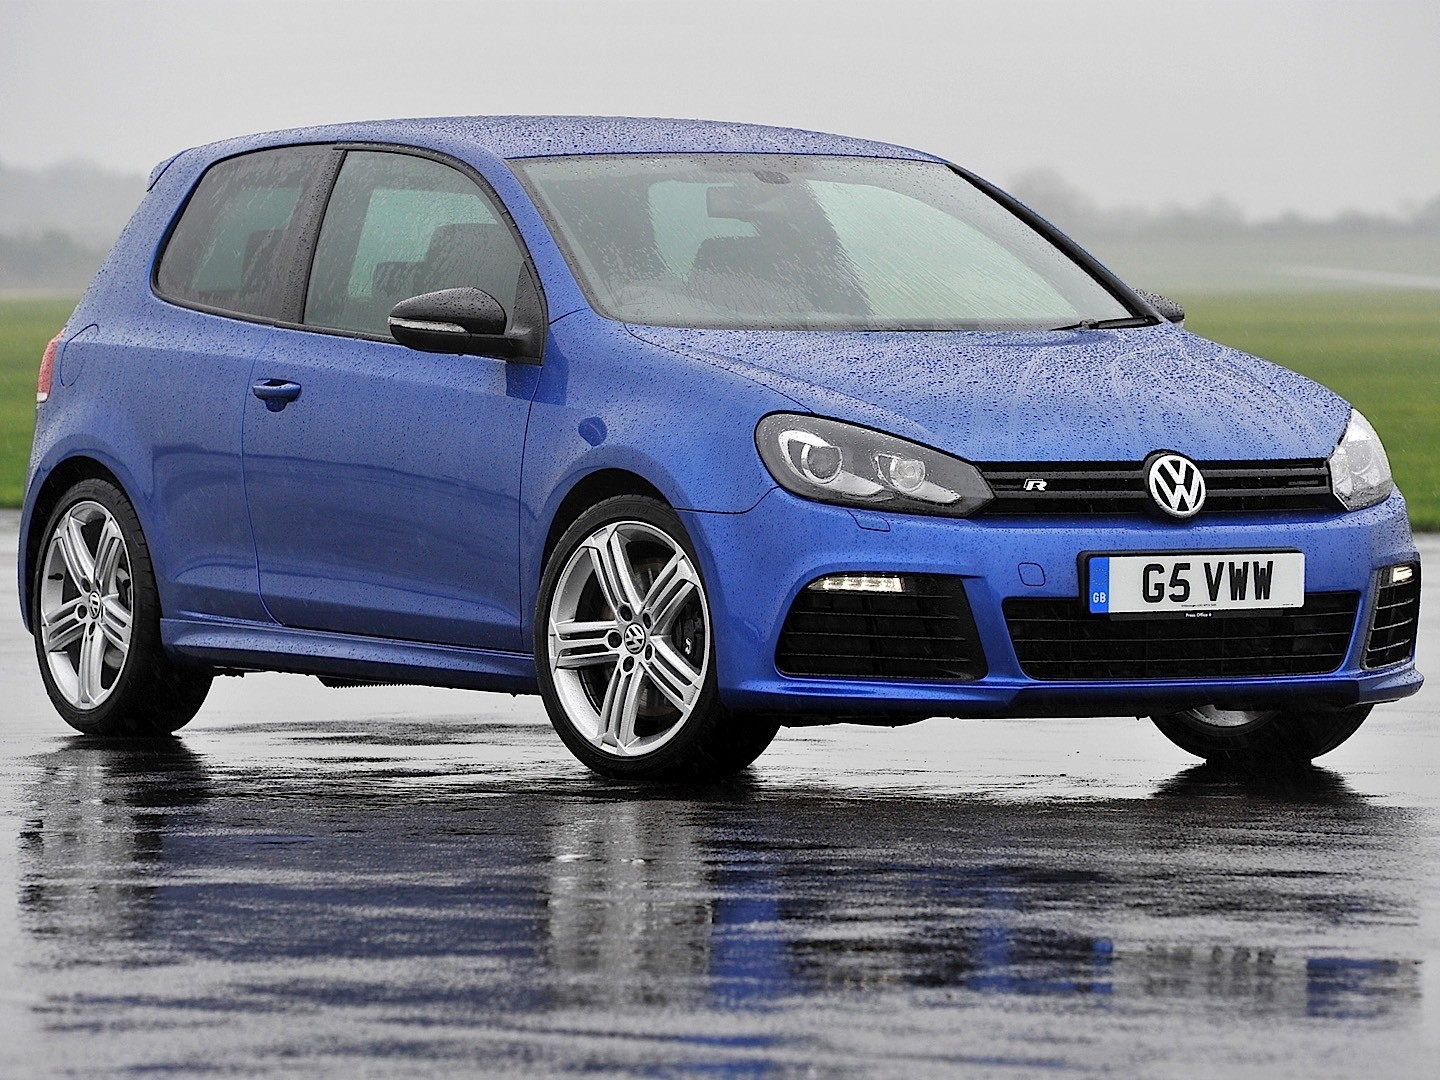 volkswagen golf vi r 3 doors specs 2009 2010 2011 2012 2013 autoevolution. Black Bedroom Furniture Sets. Home Design Ideas